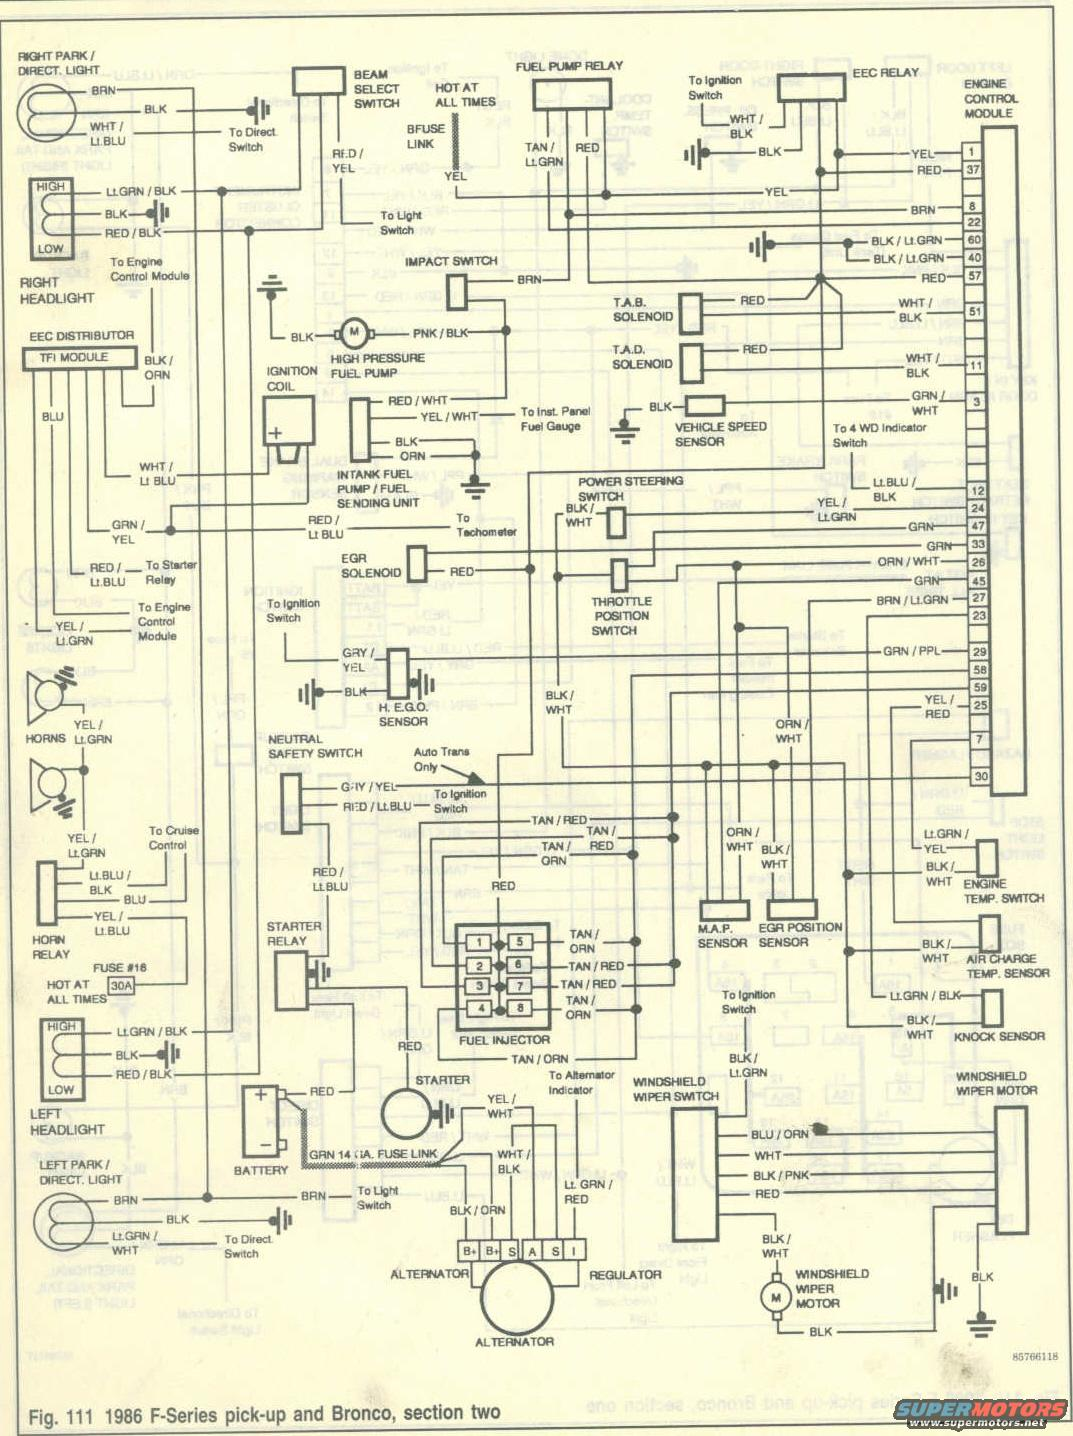 1986 Ford Bronco    Wiring    Diagrams picture   SuperMotors